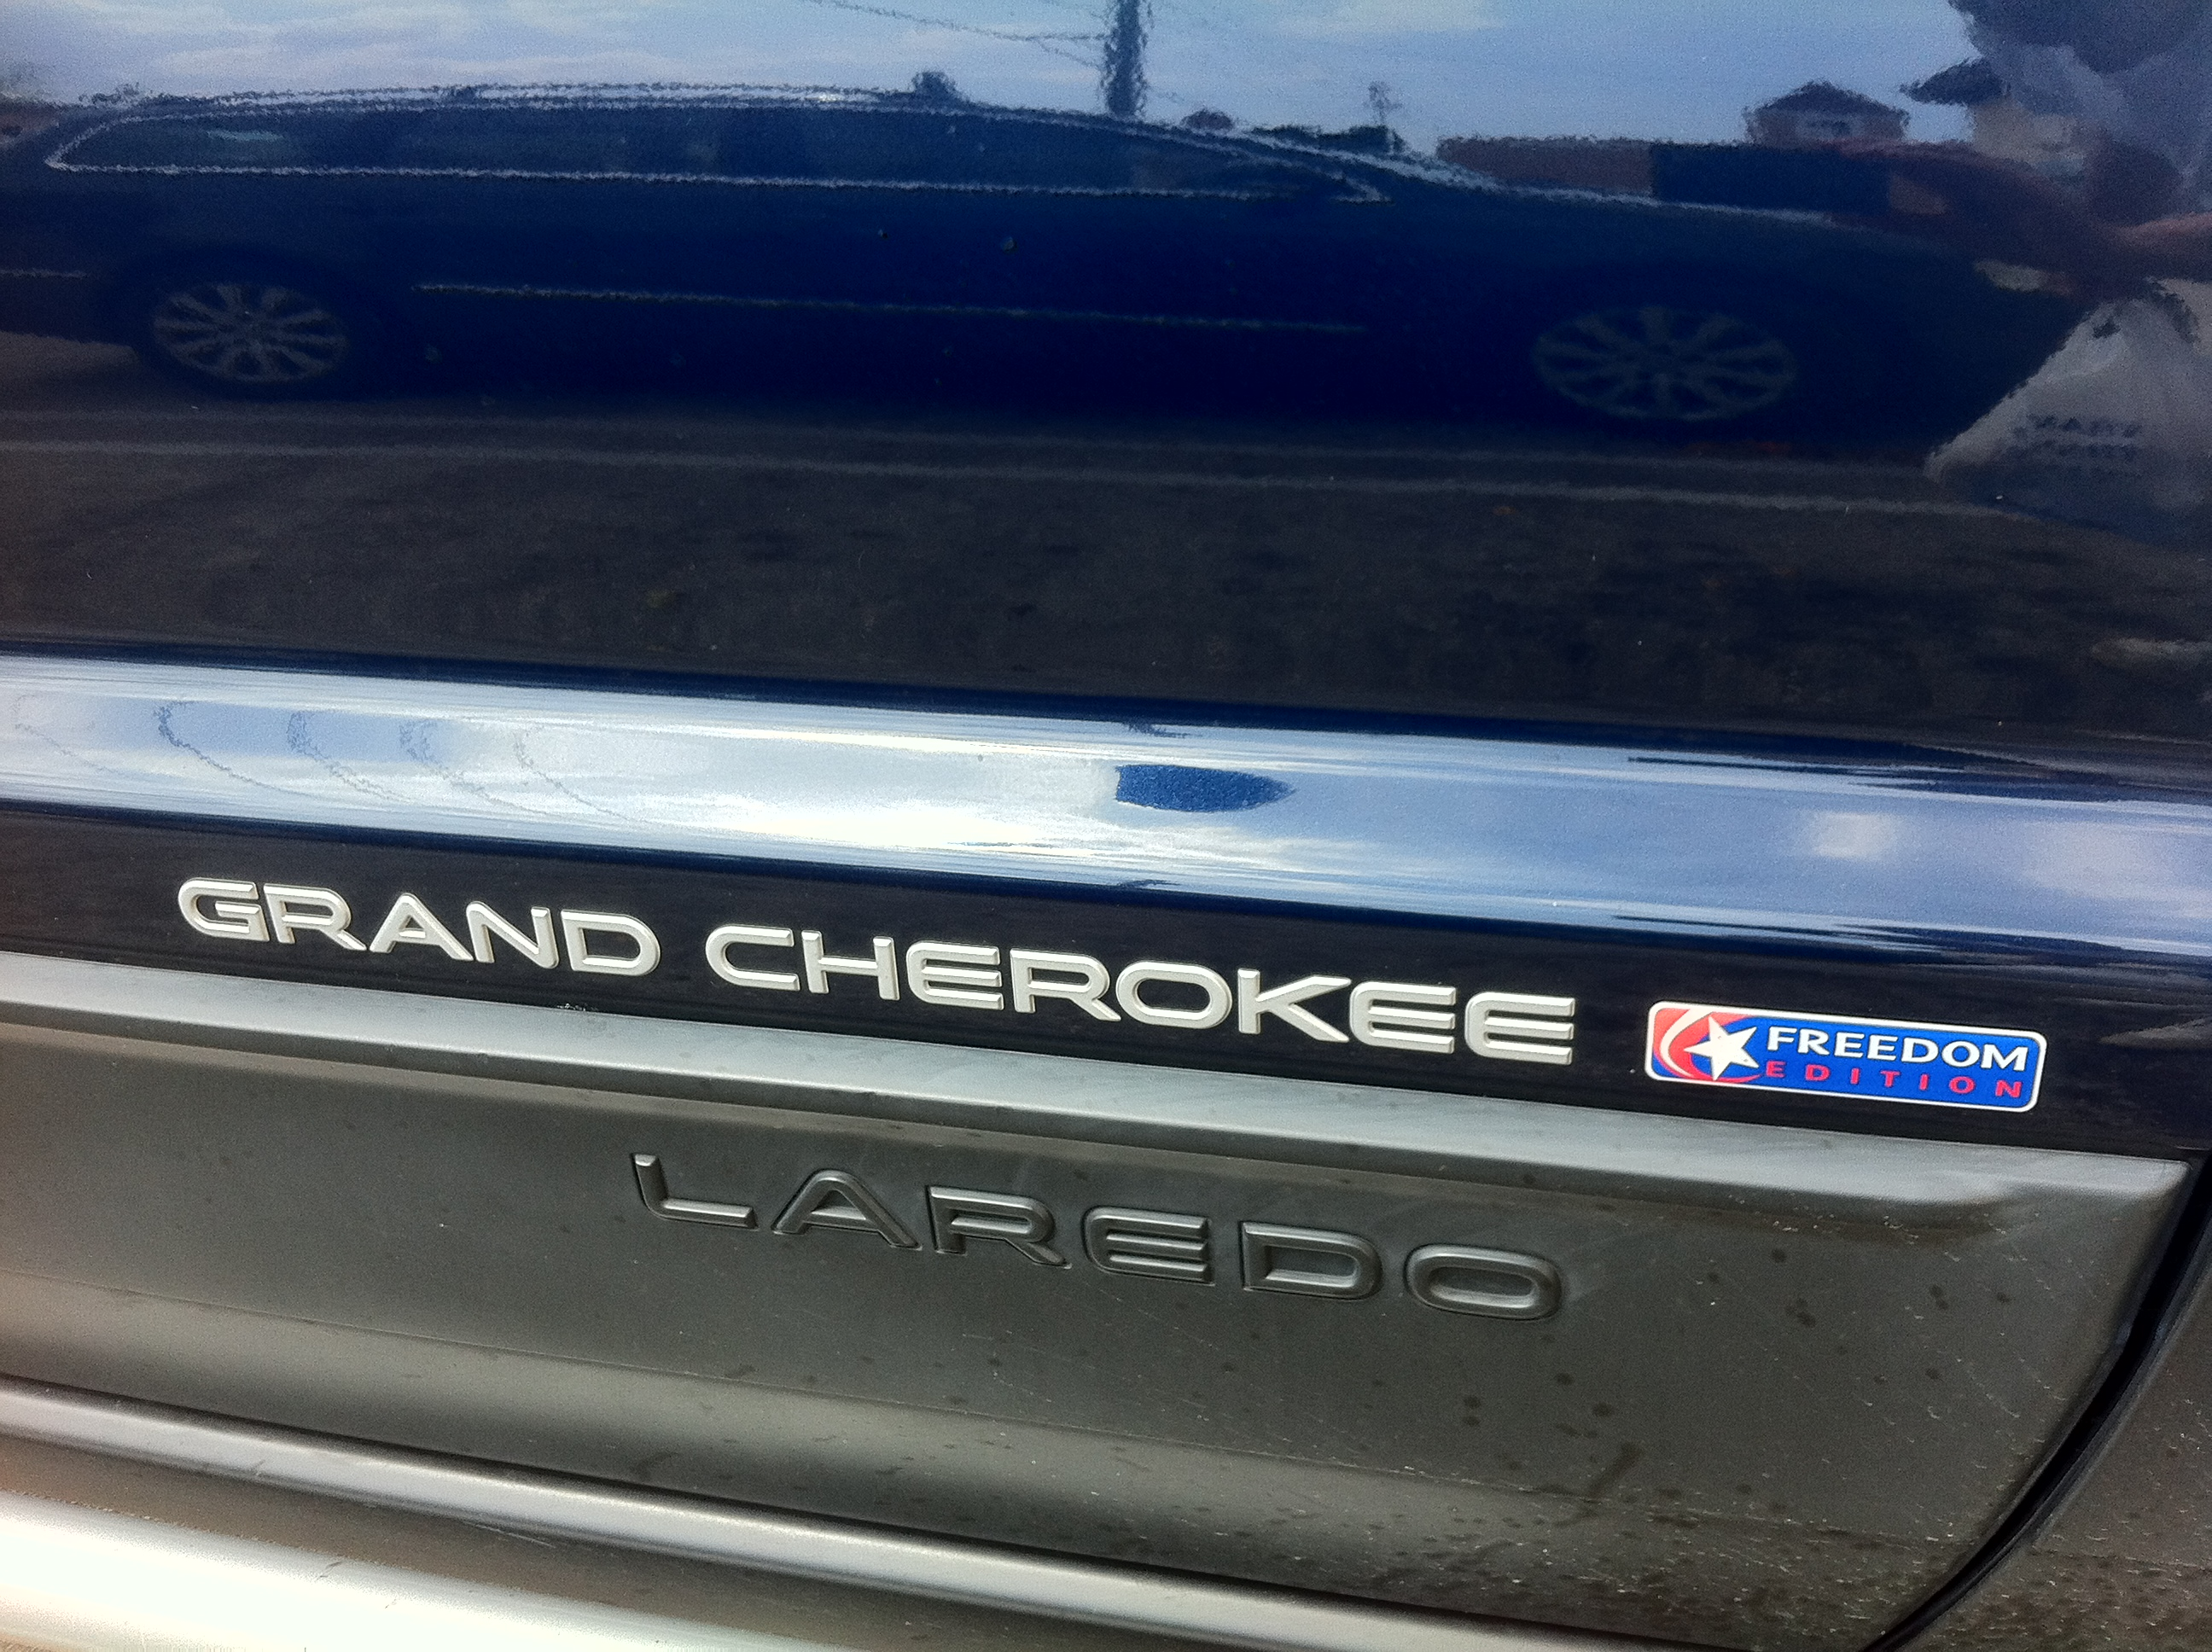 Grand Cherokee Wj Overland >> File:Jeep Grand Cherokee WJ Freedom Edition in Midnight Blue Pearl Coat emblem.jpg - Wikimedia ...